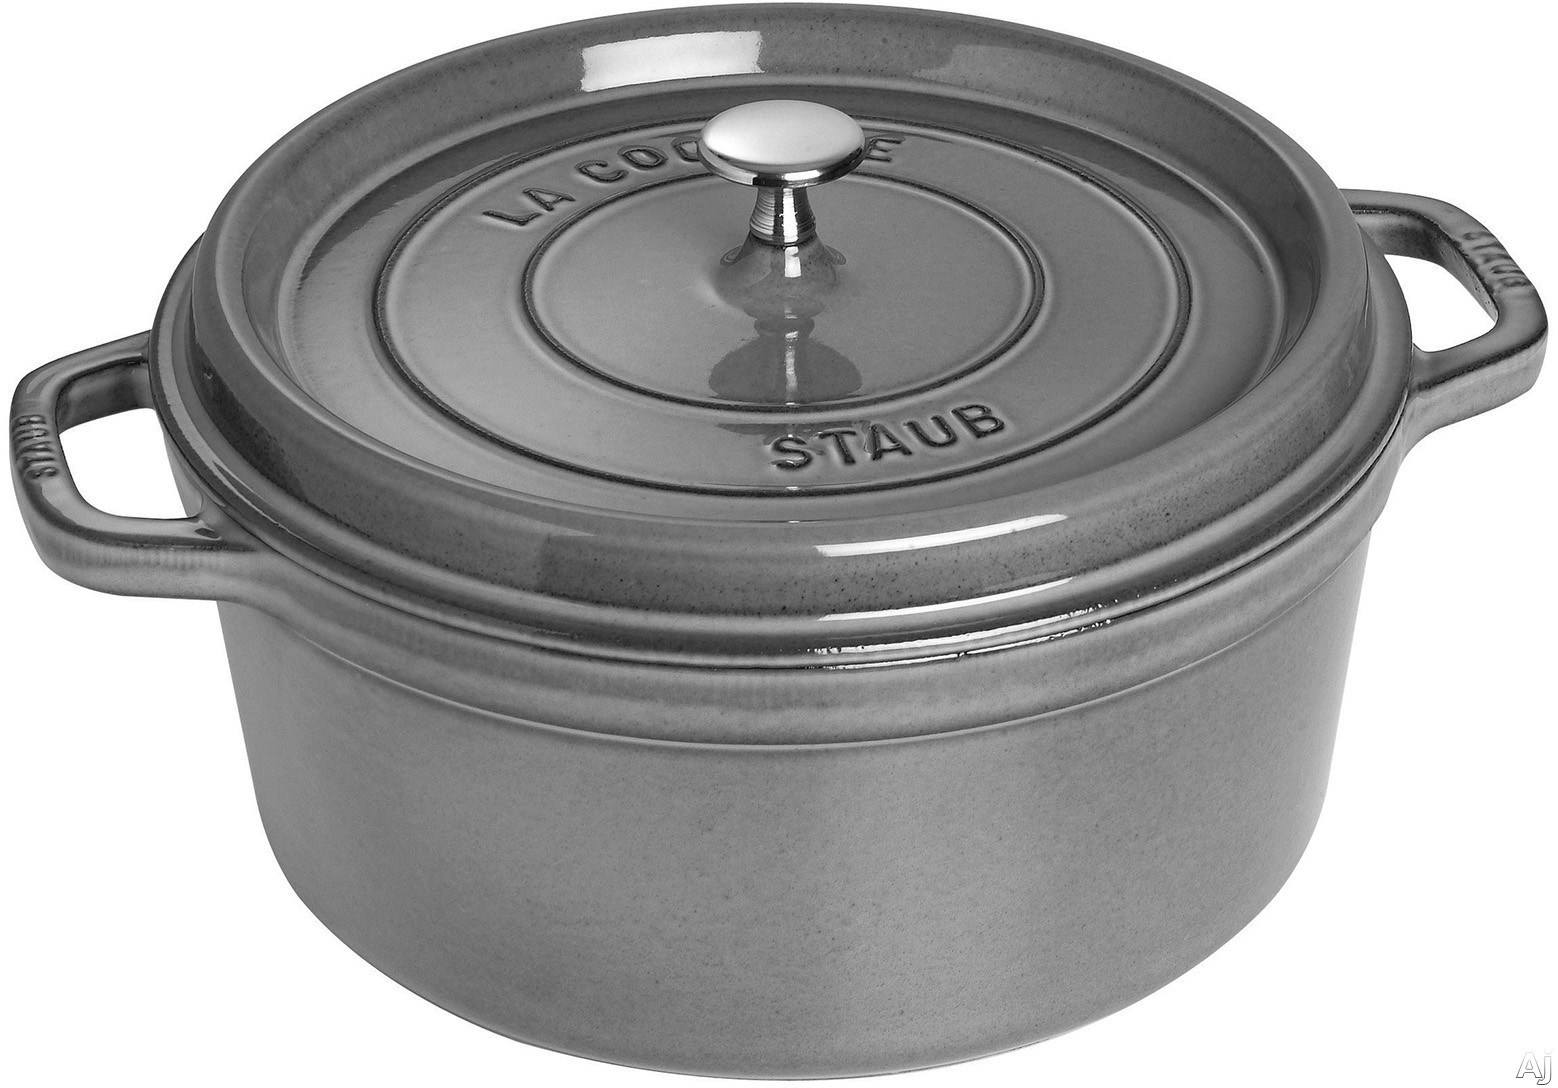 Staub 1102818 7 Quart Cast Iron Round Cocotte with Heavyweight Lid, Induction Suitable, Oven Safe, Made in France, Dishwasher Safe and Nickel Steel Knob: Grey